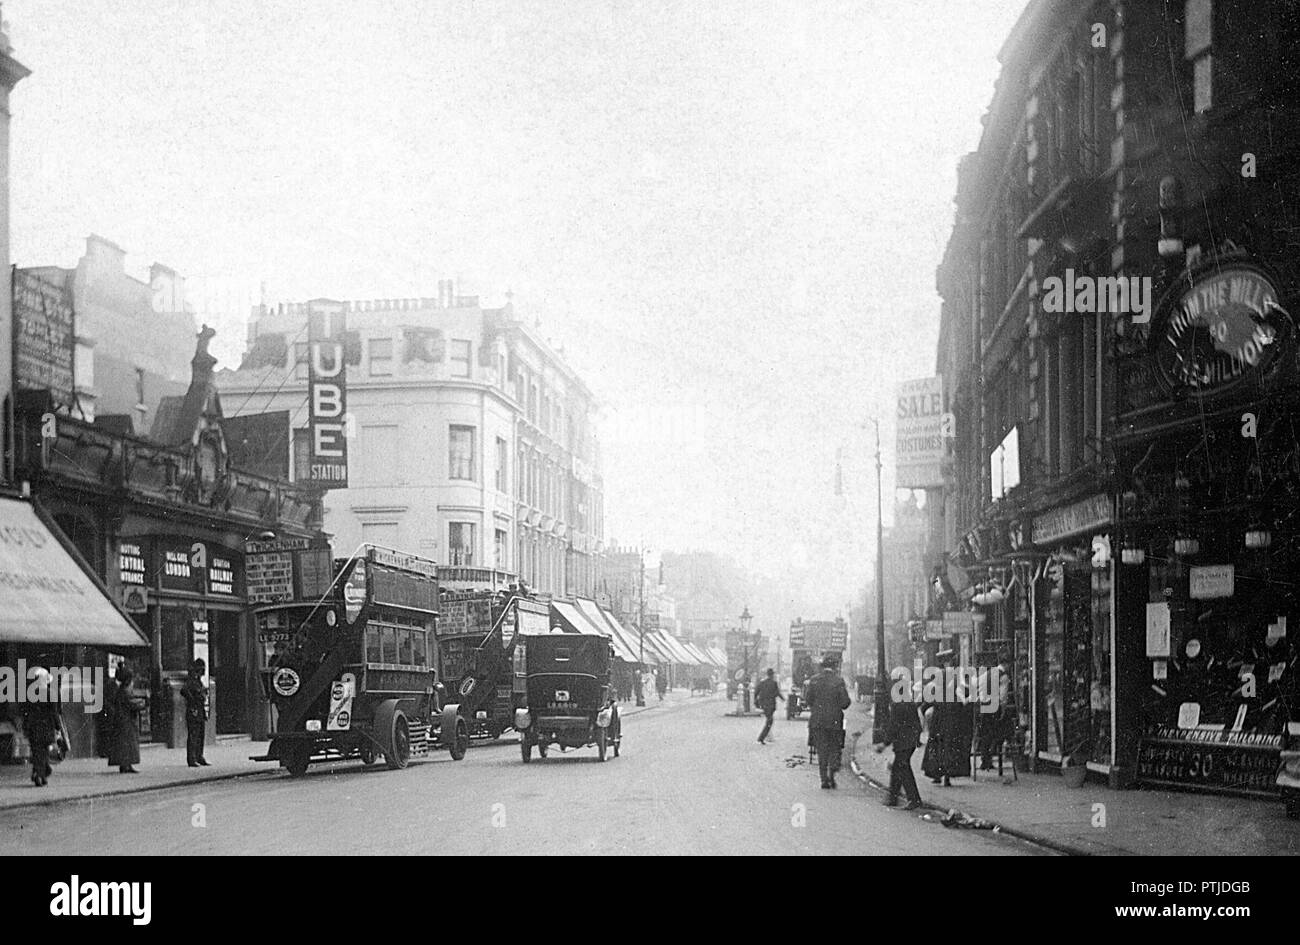 High Street Notting Hill Gate, London early 1900's - Stock Image